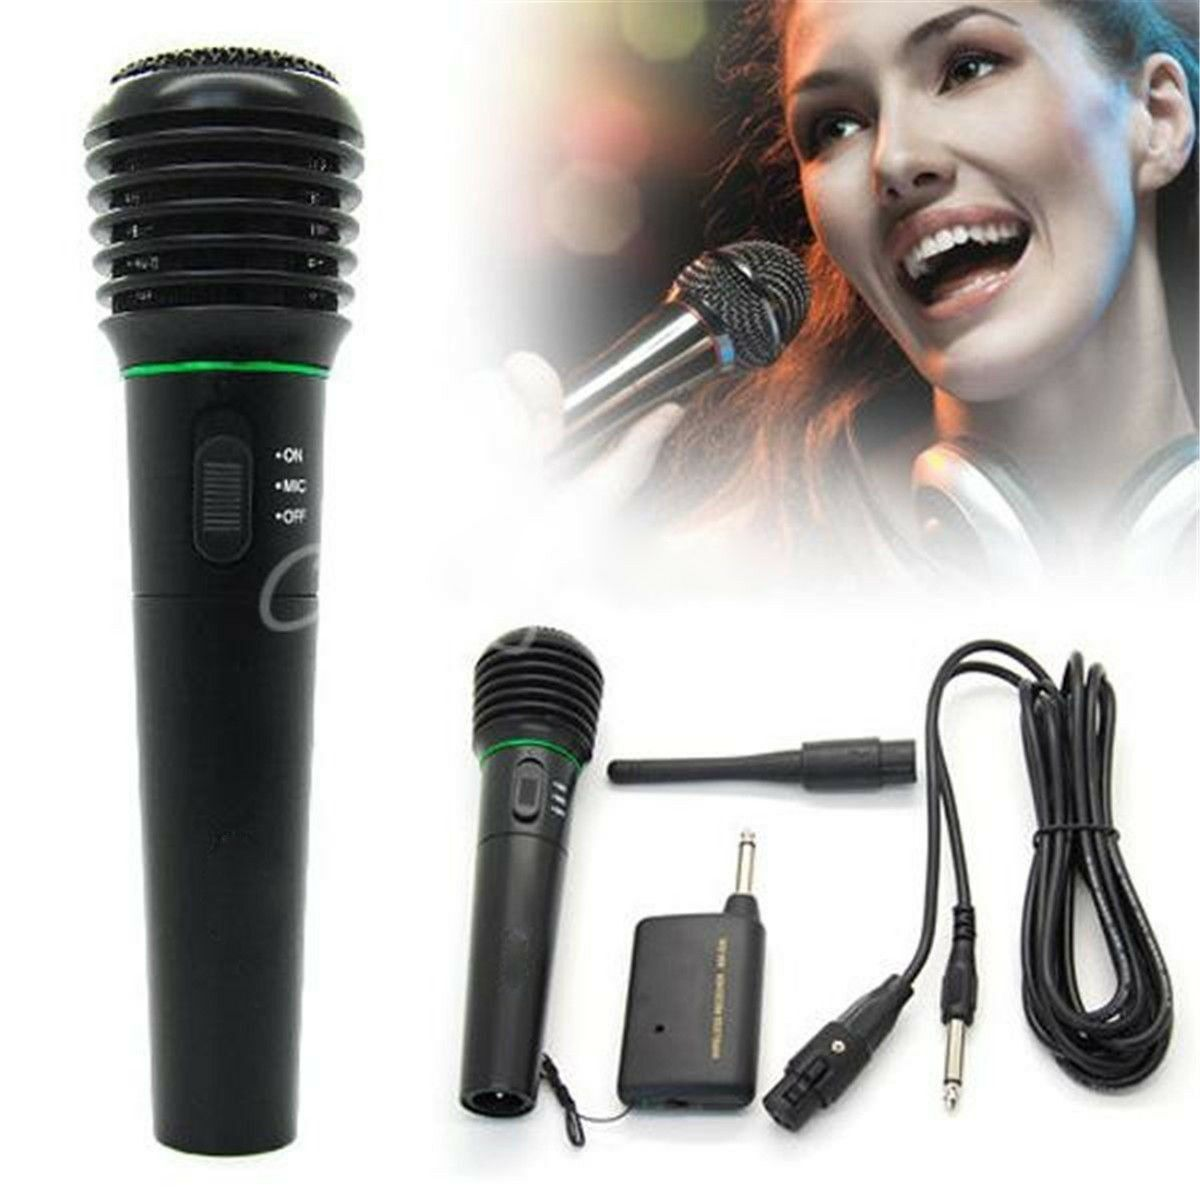 Microphone Wireless/Wired 2in1 Handheld Cordless Mic For Kar